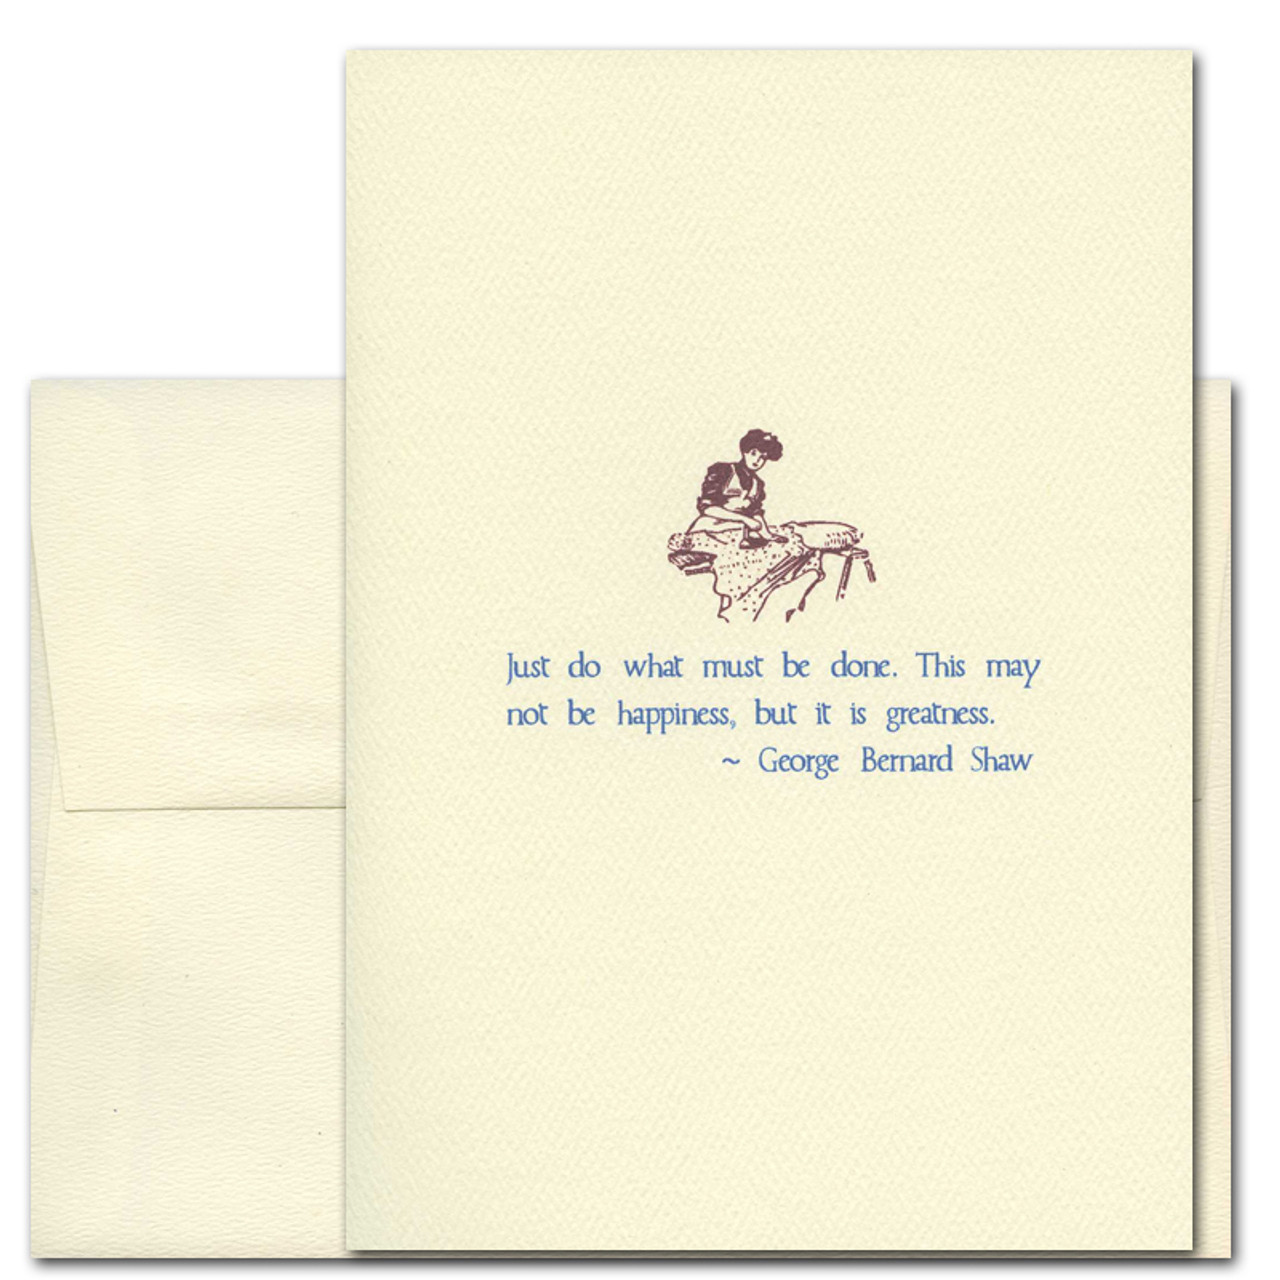 """Quotation Card """"What Must Be Done: Shaw"""" Cover shows old fashioned illustration of a women ironing with a quote by George Bernard Shaw that reads """"Just do what must be done. This may not be happiness, but it is greatness."""""""